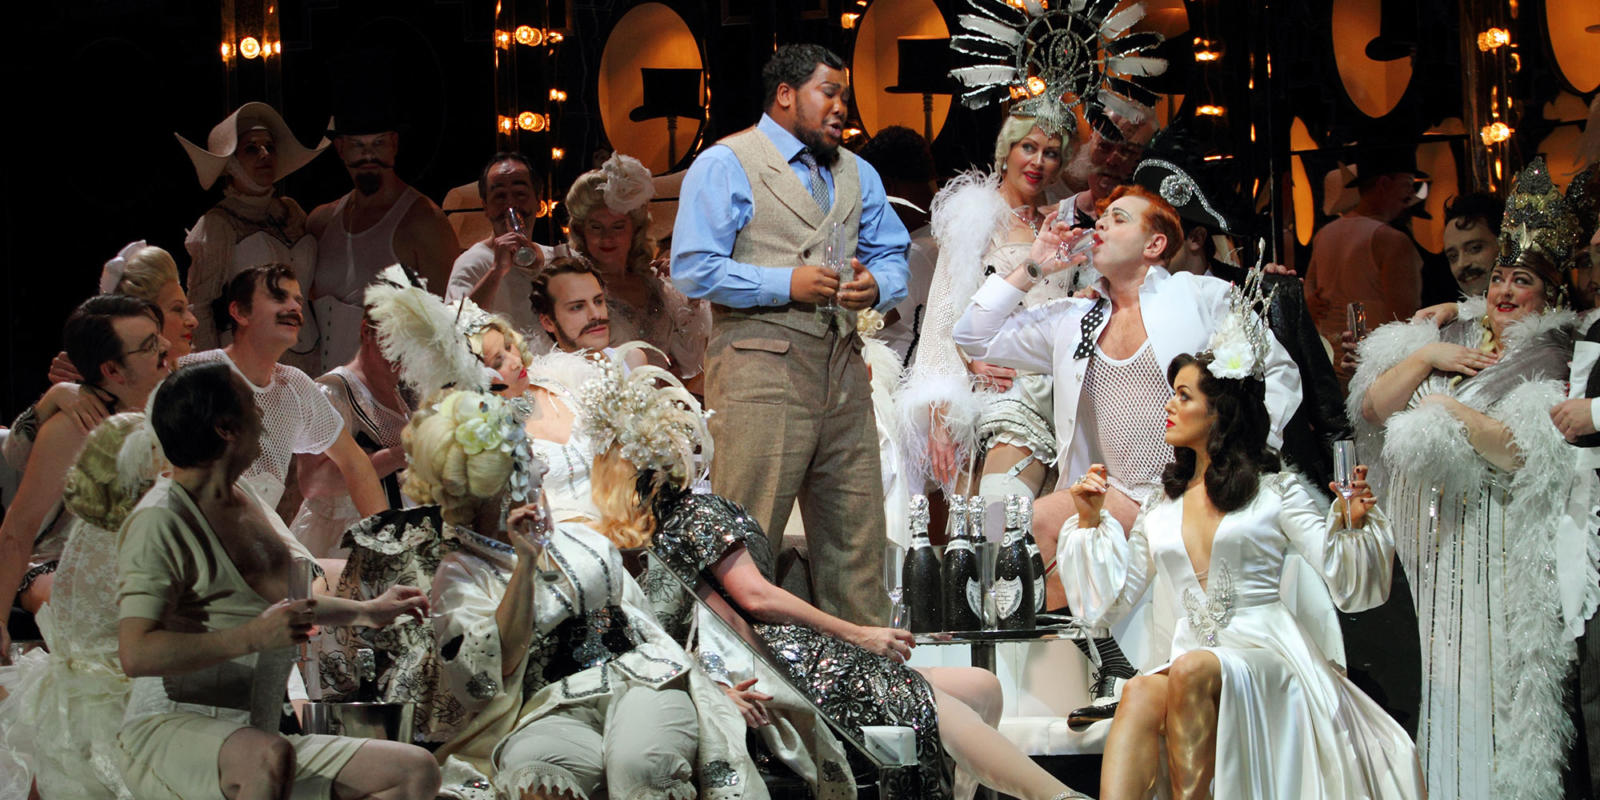 ENO Traviata Heather Shipp, Lukhanyo Moyake, Aled Hall and Claudia Boyle (c) Catherine Ashmore